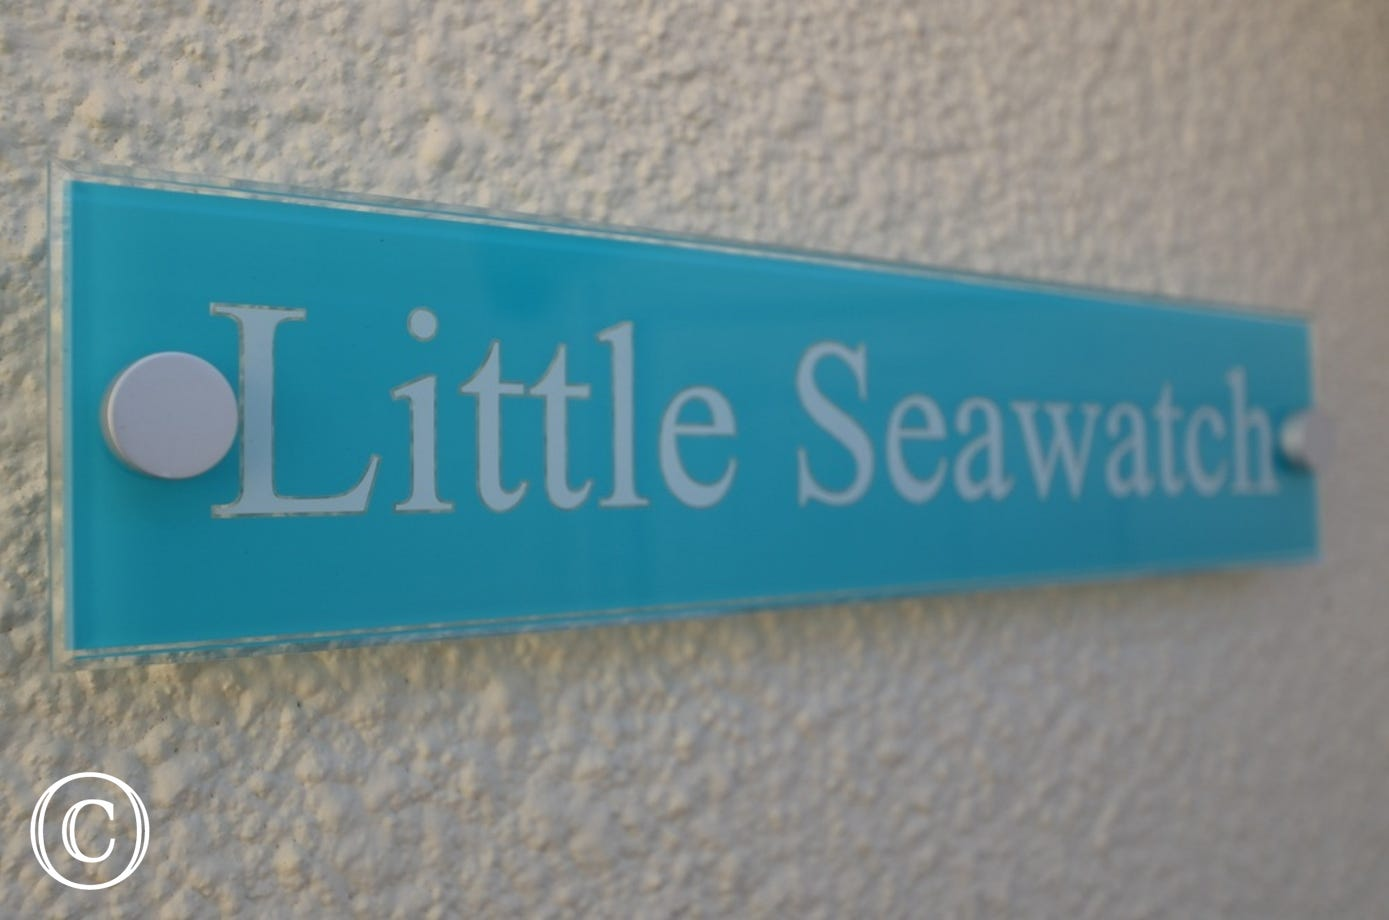 Little Seawatch property name sign